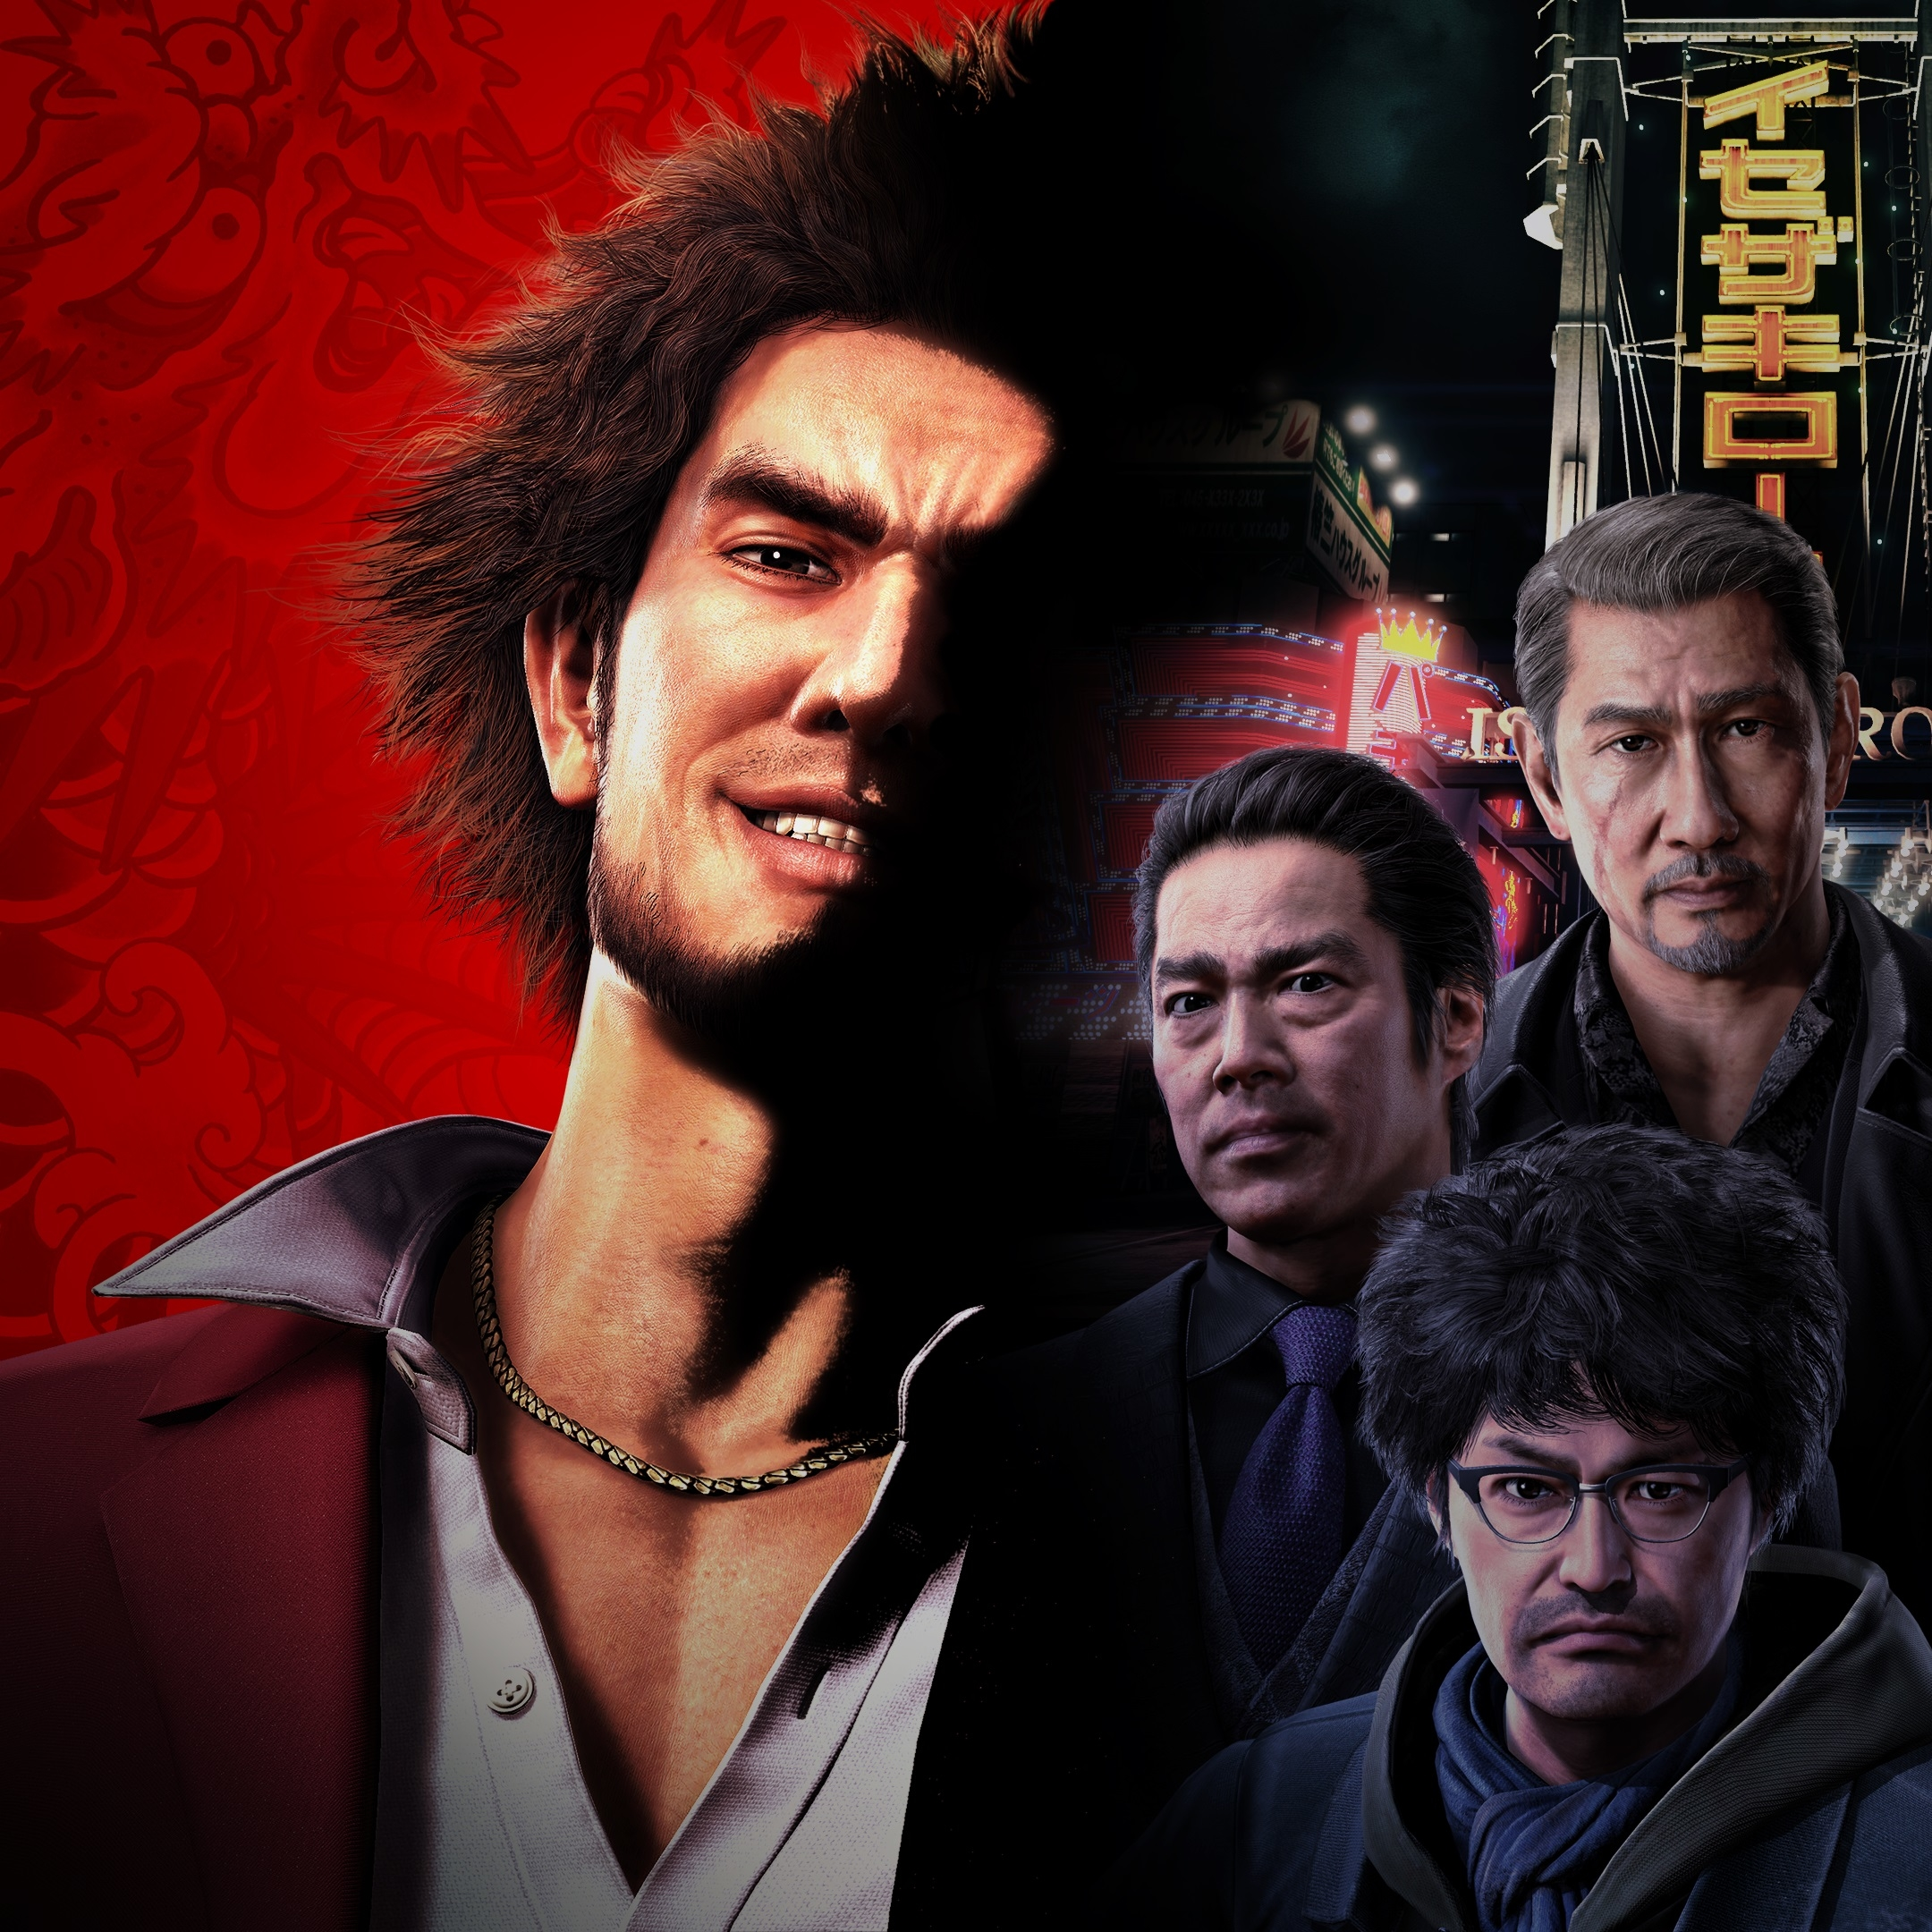 480x484 Yakuza Like A Dragon Android One Wallpaper Hd Games 4k Wallpapers Images Photos And Background